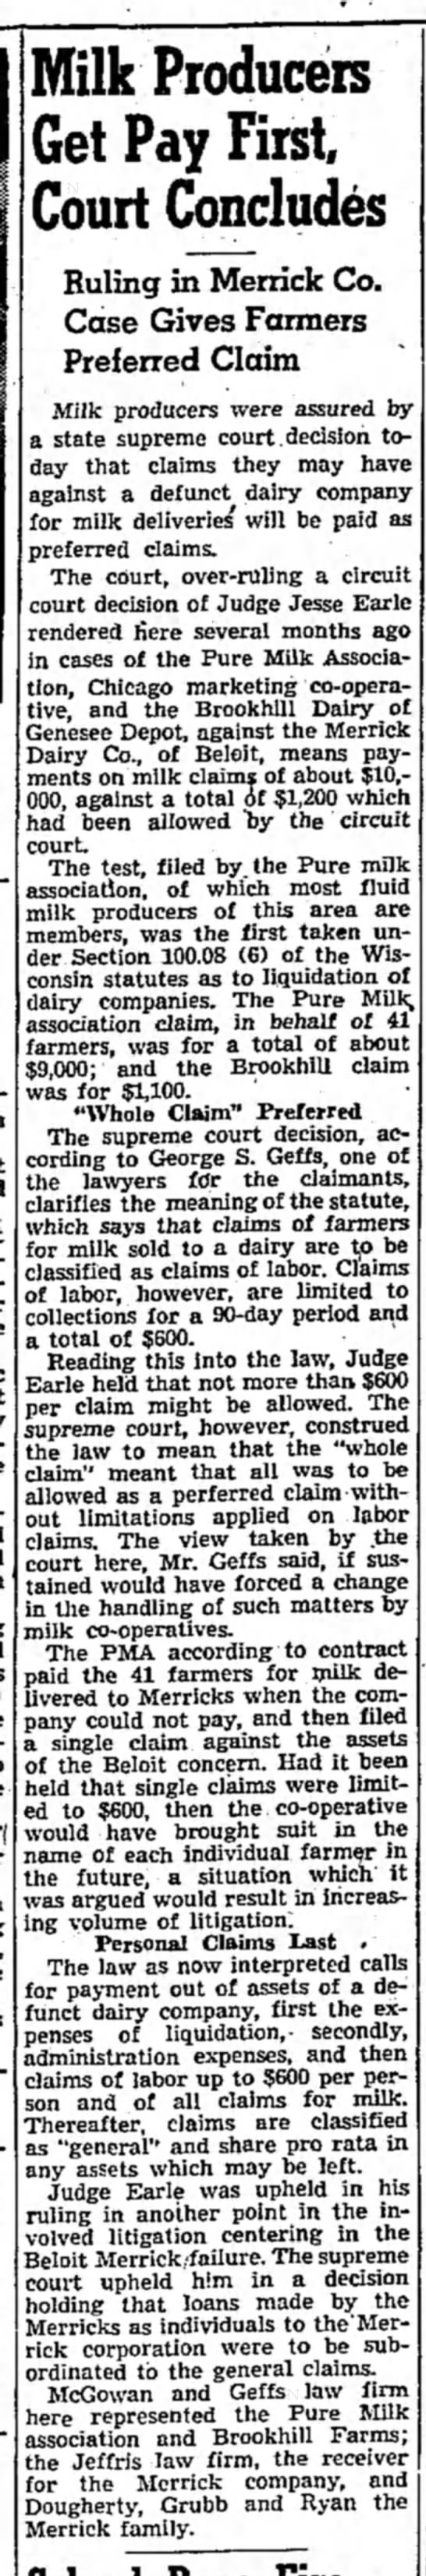 Merrick Dairy 22 Oct 1946 - Milk Producers Get Pay First, Court Concludes...